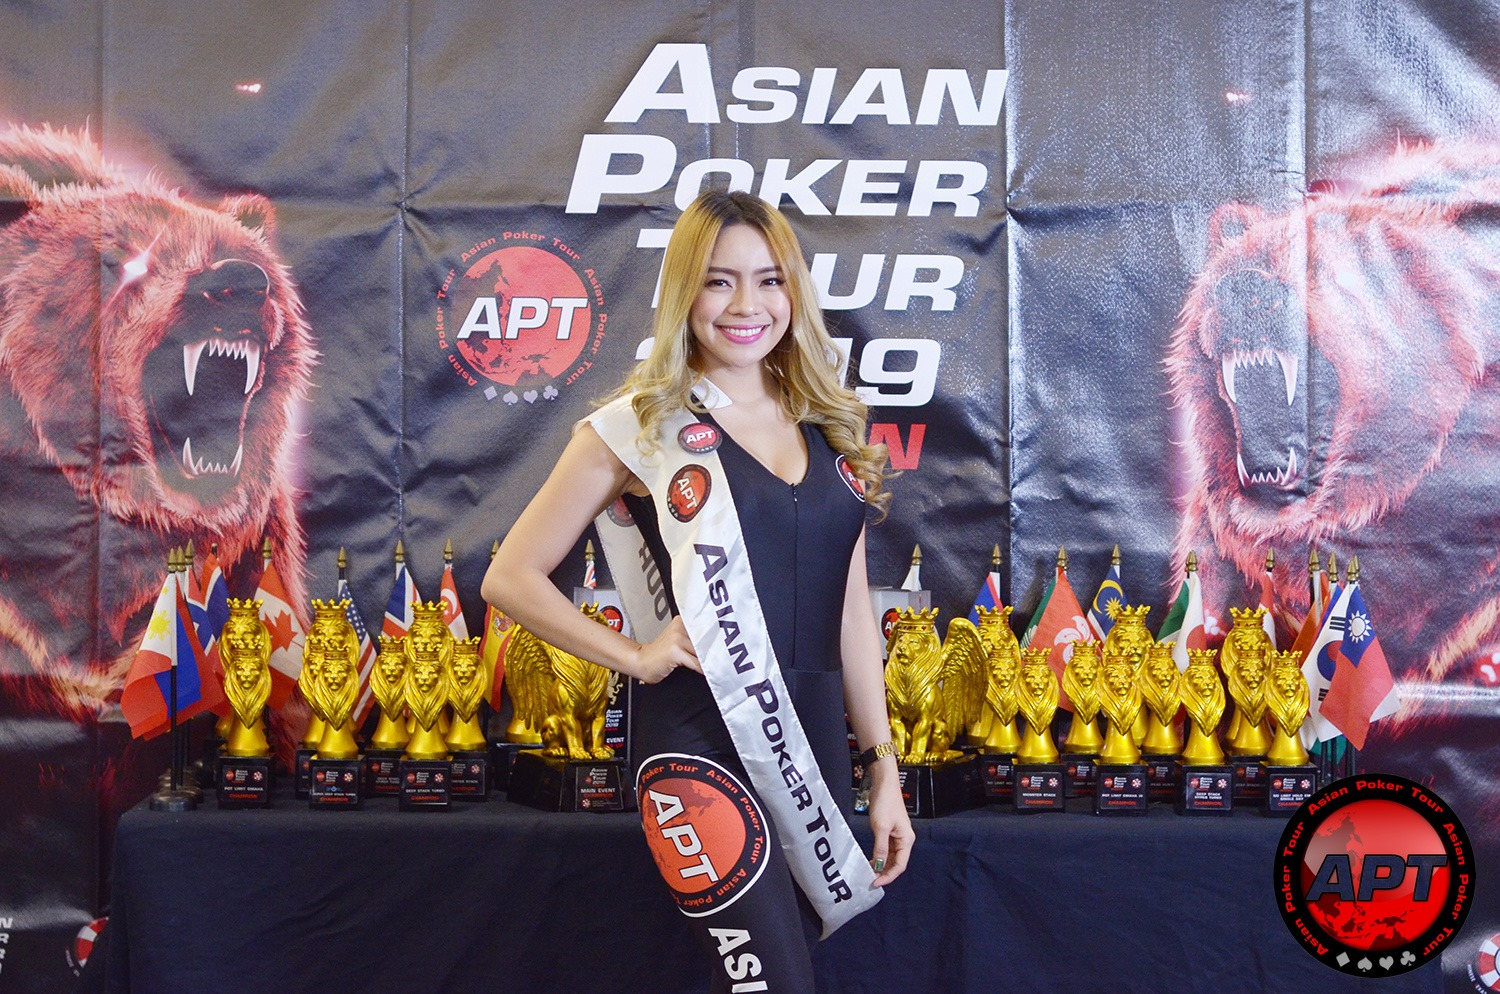 Asian Poker Tour hosts its grand finale in Taiwan with NT$ 14 Million in guaranteed prizes